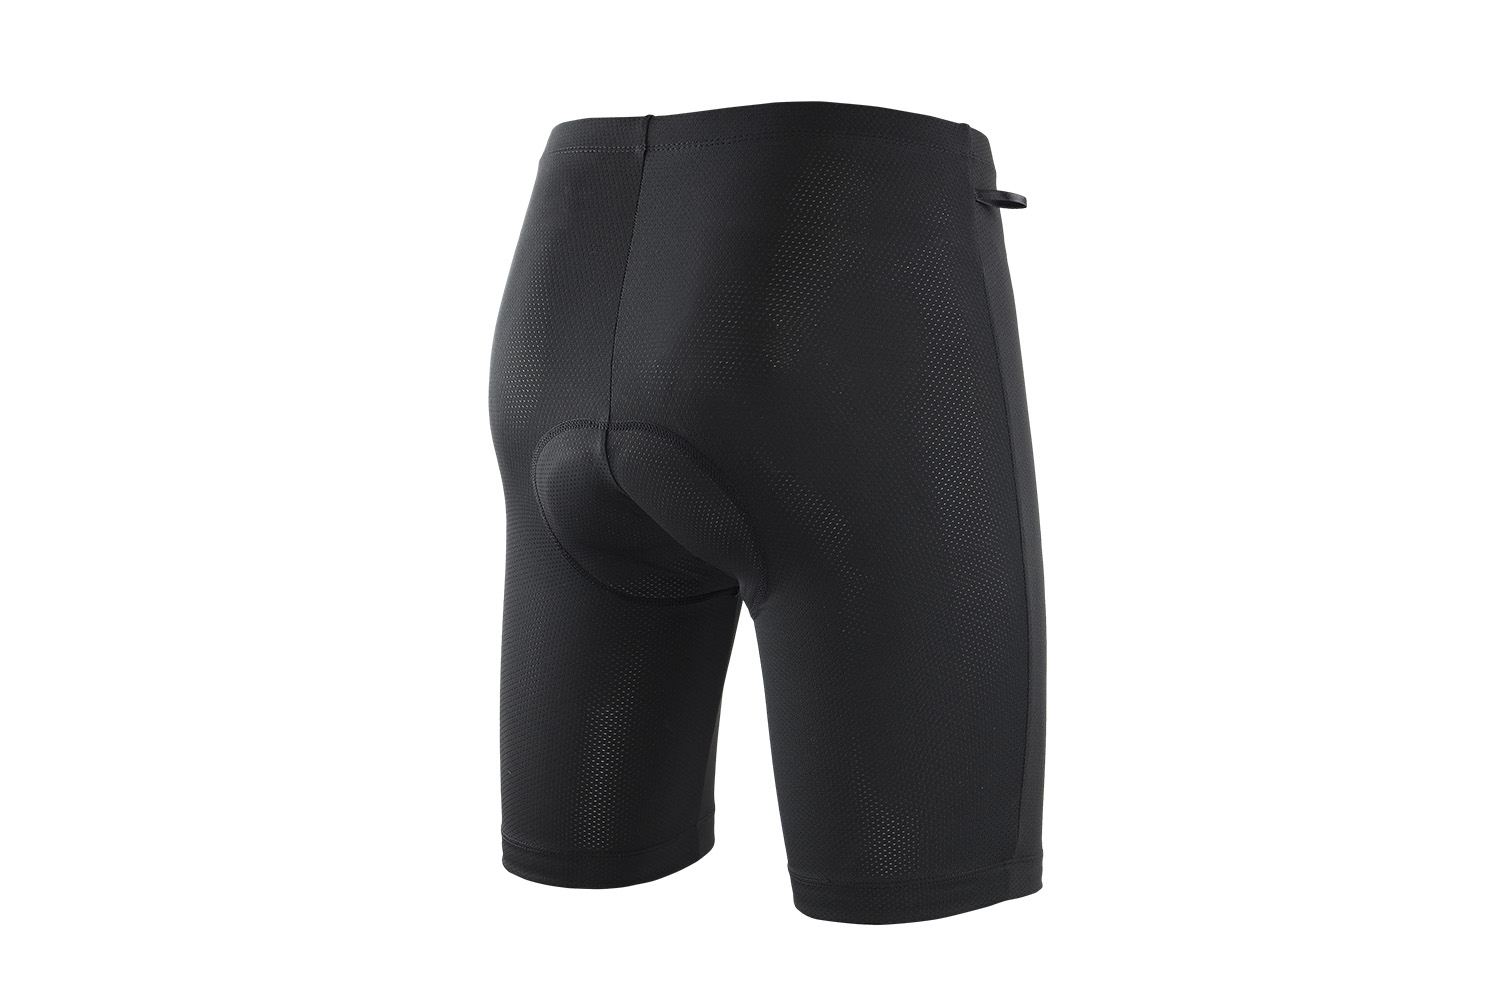 8bar-gravel-cycling-underwear-fahrrad-unterhose-men-black-003